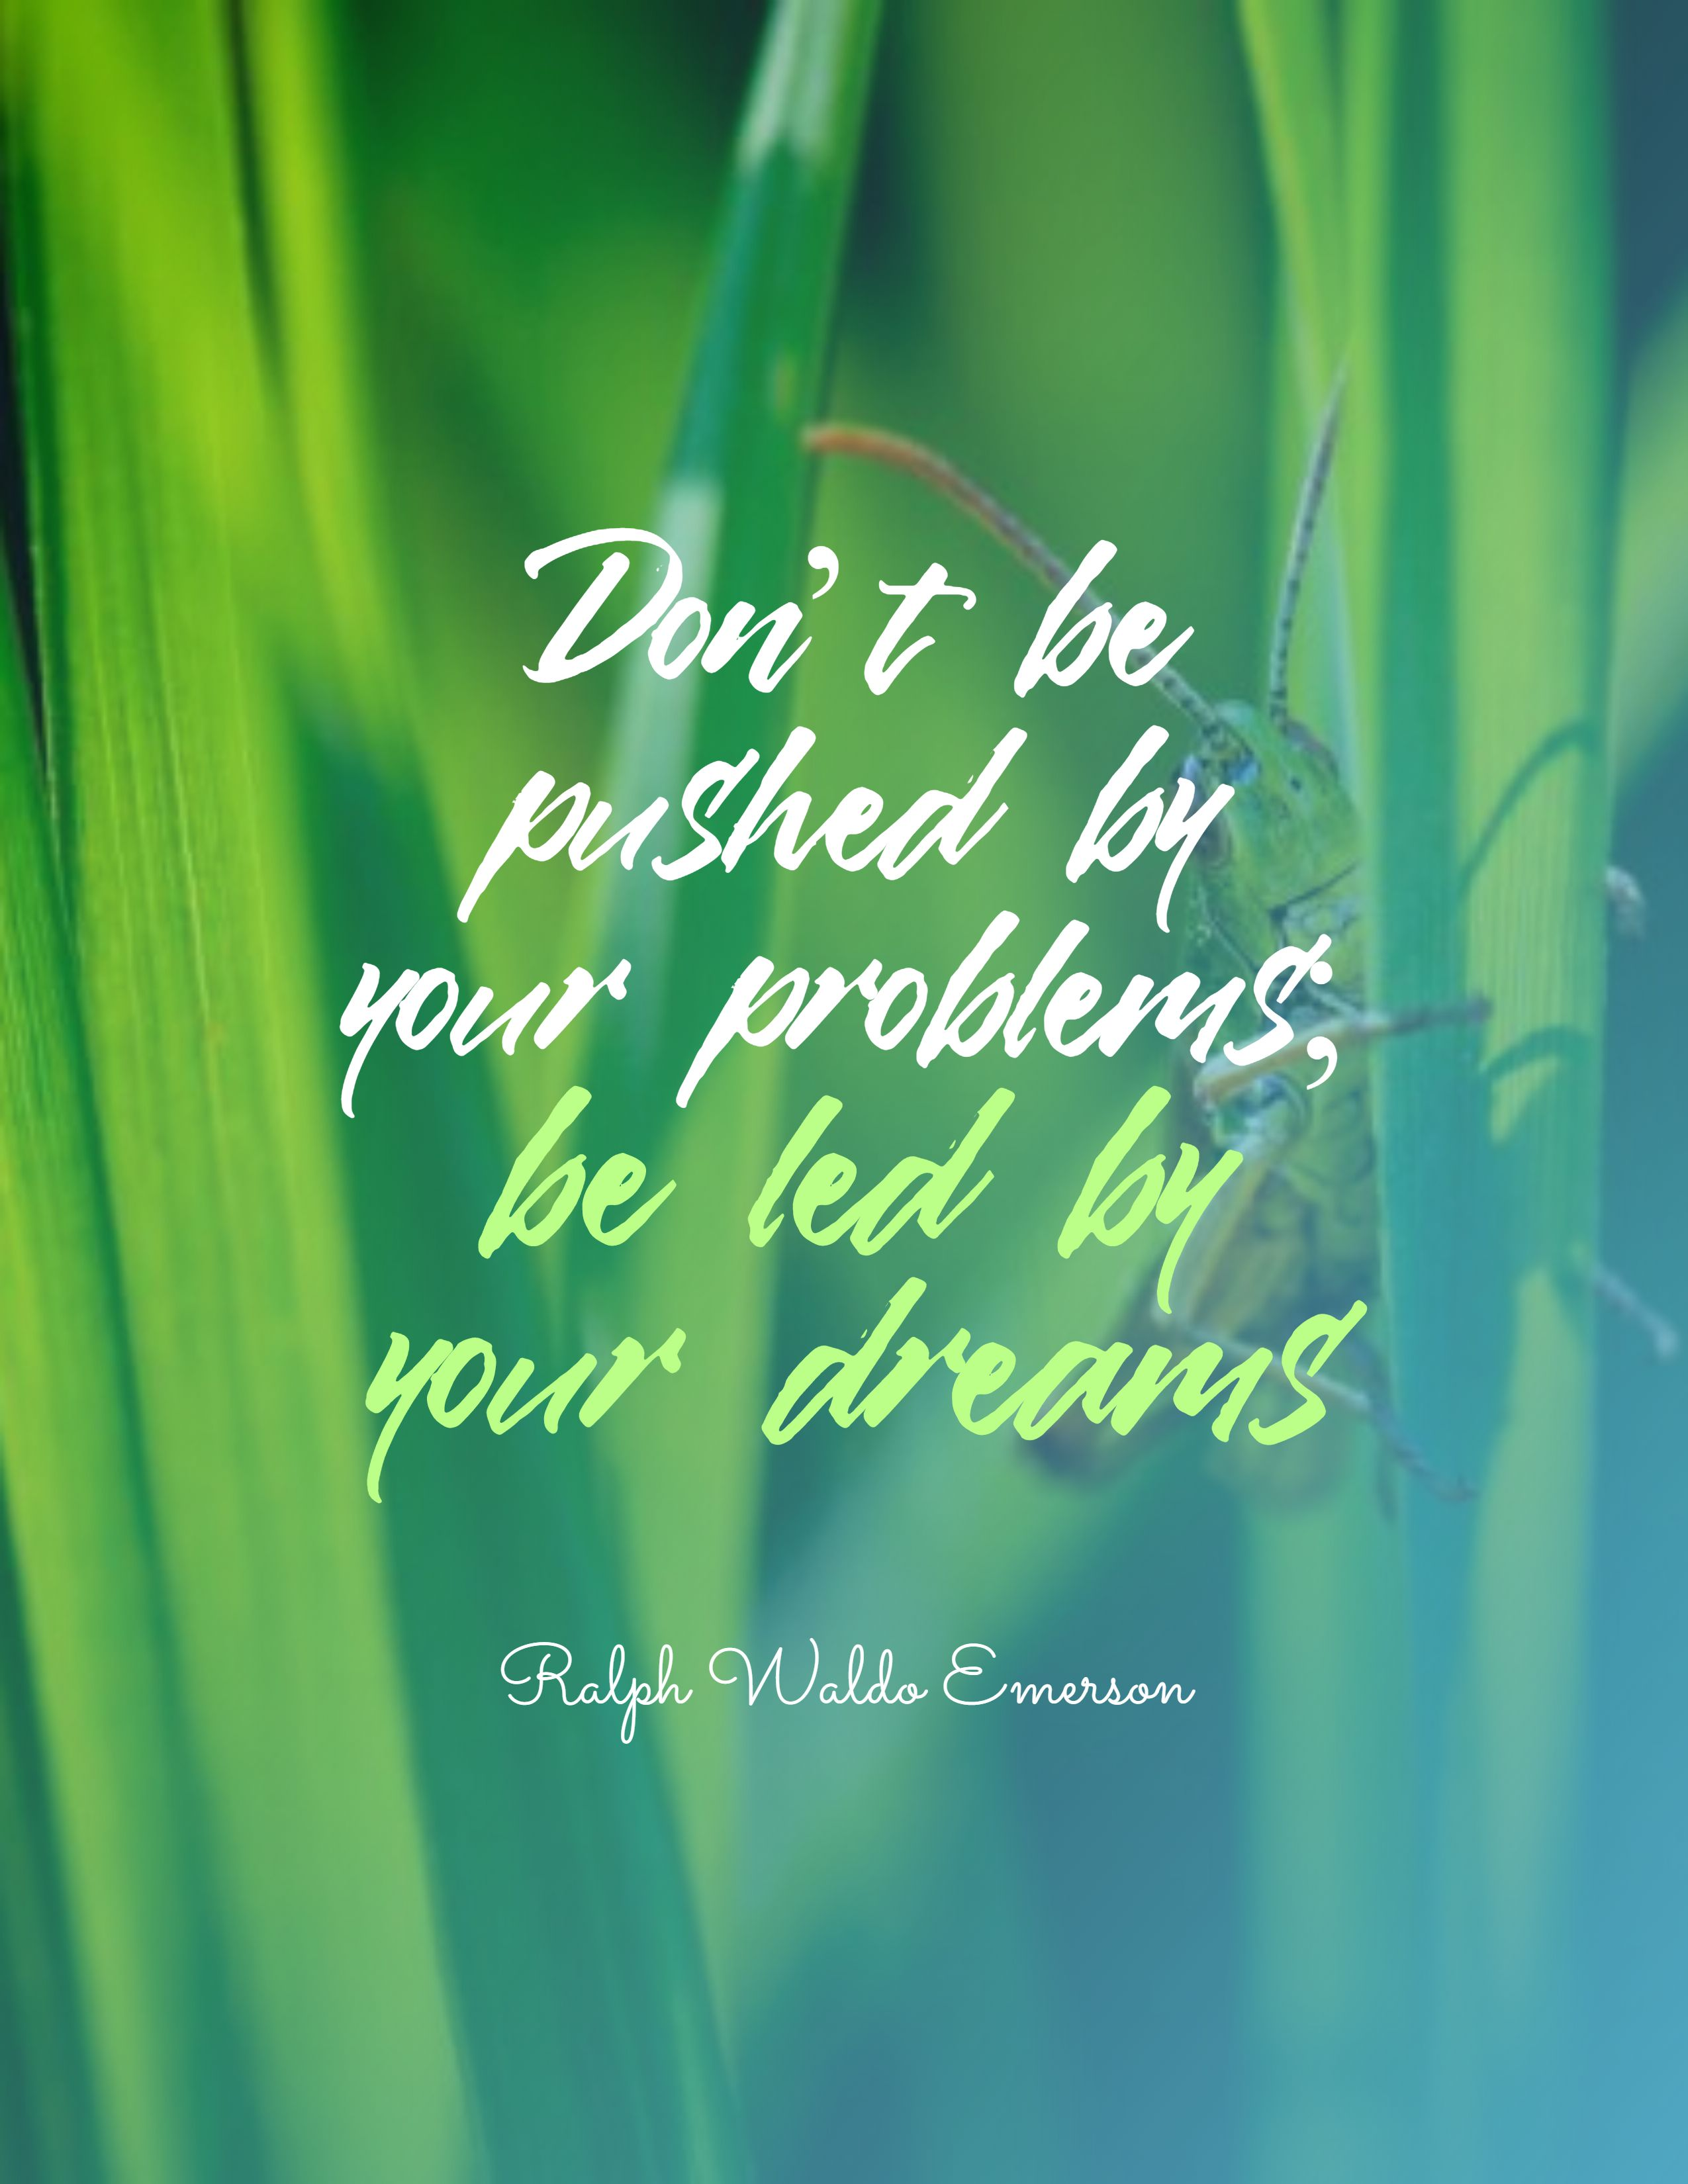 Quotes image of Don't be pushed by your problems; be led by your dreams